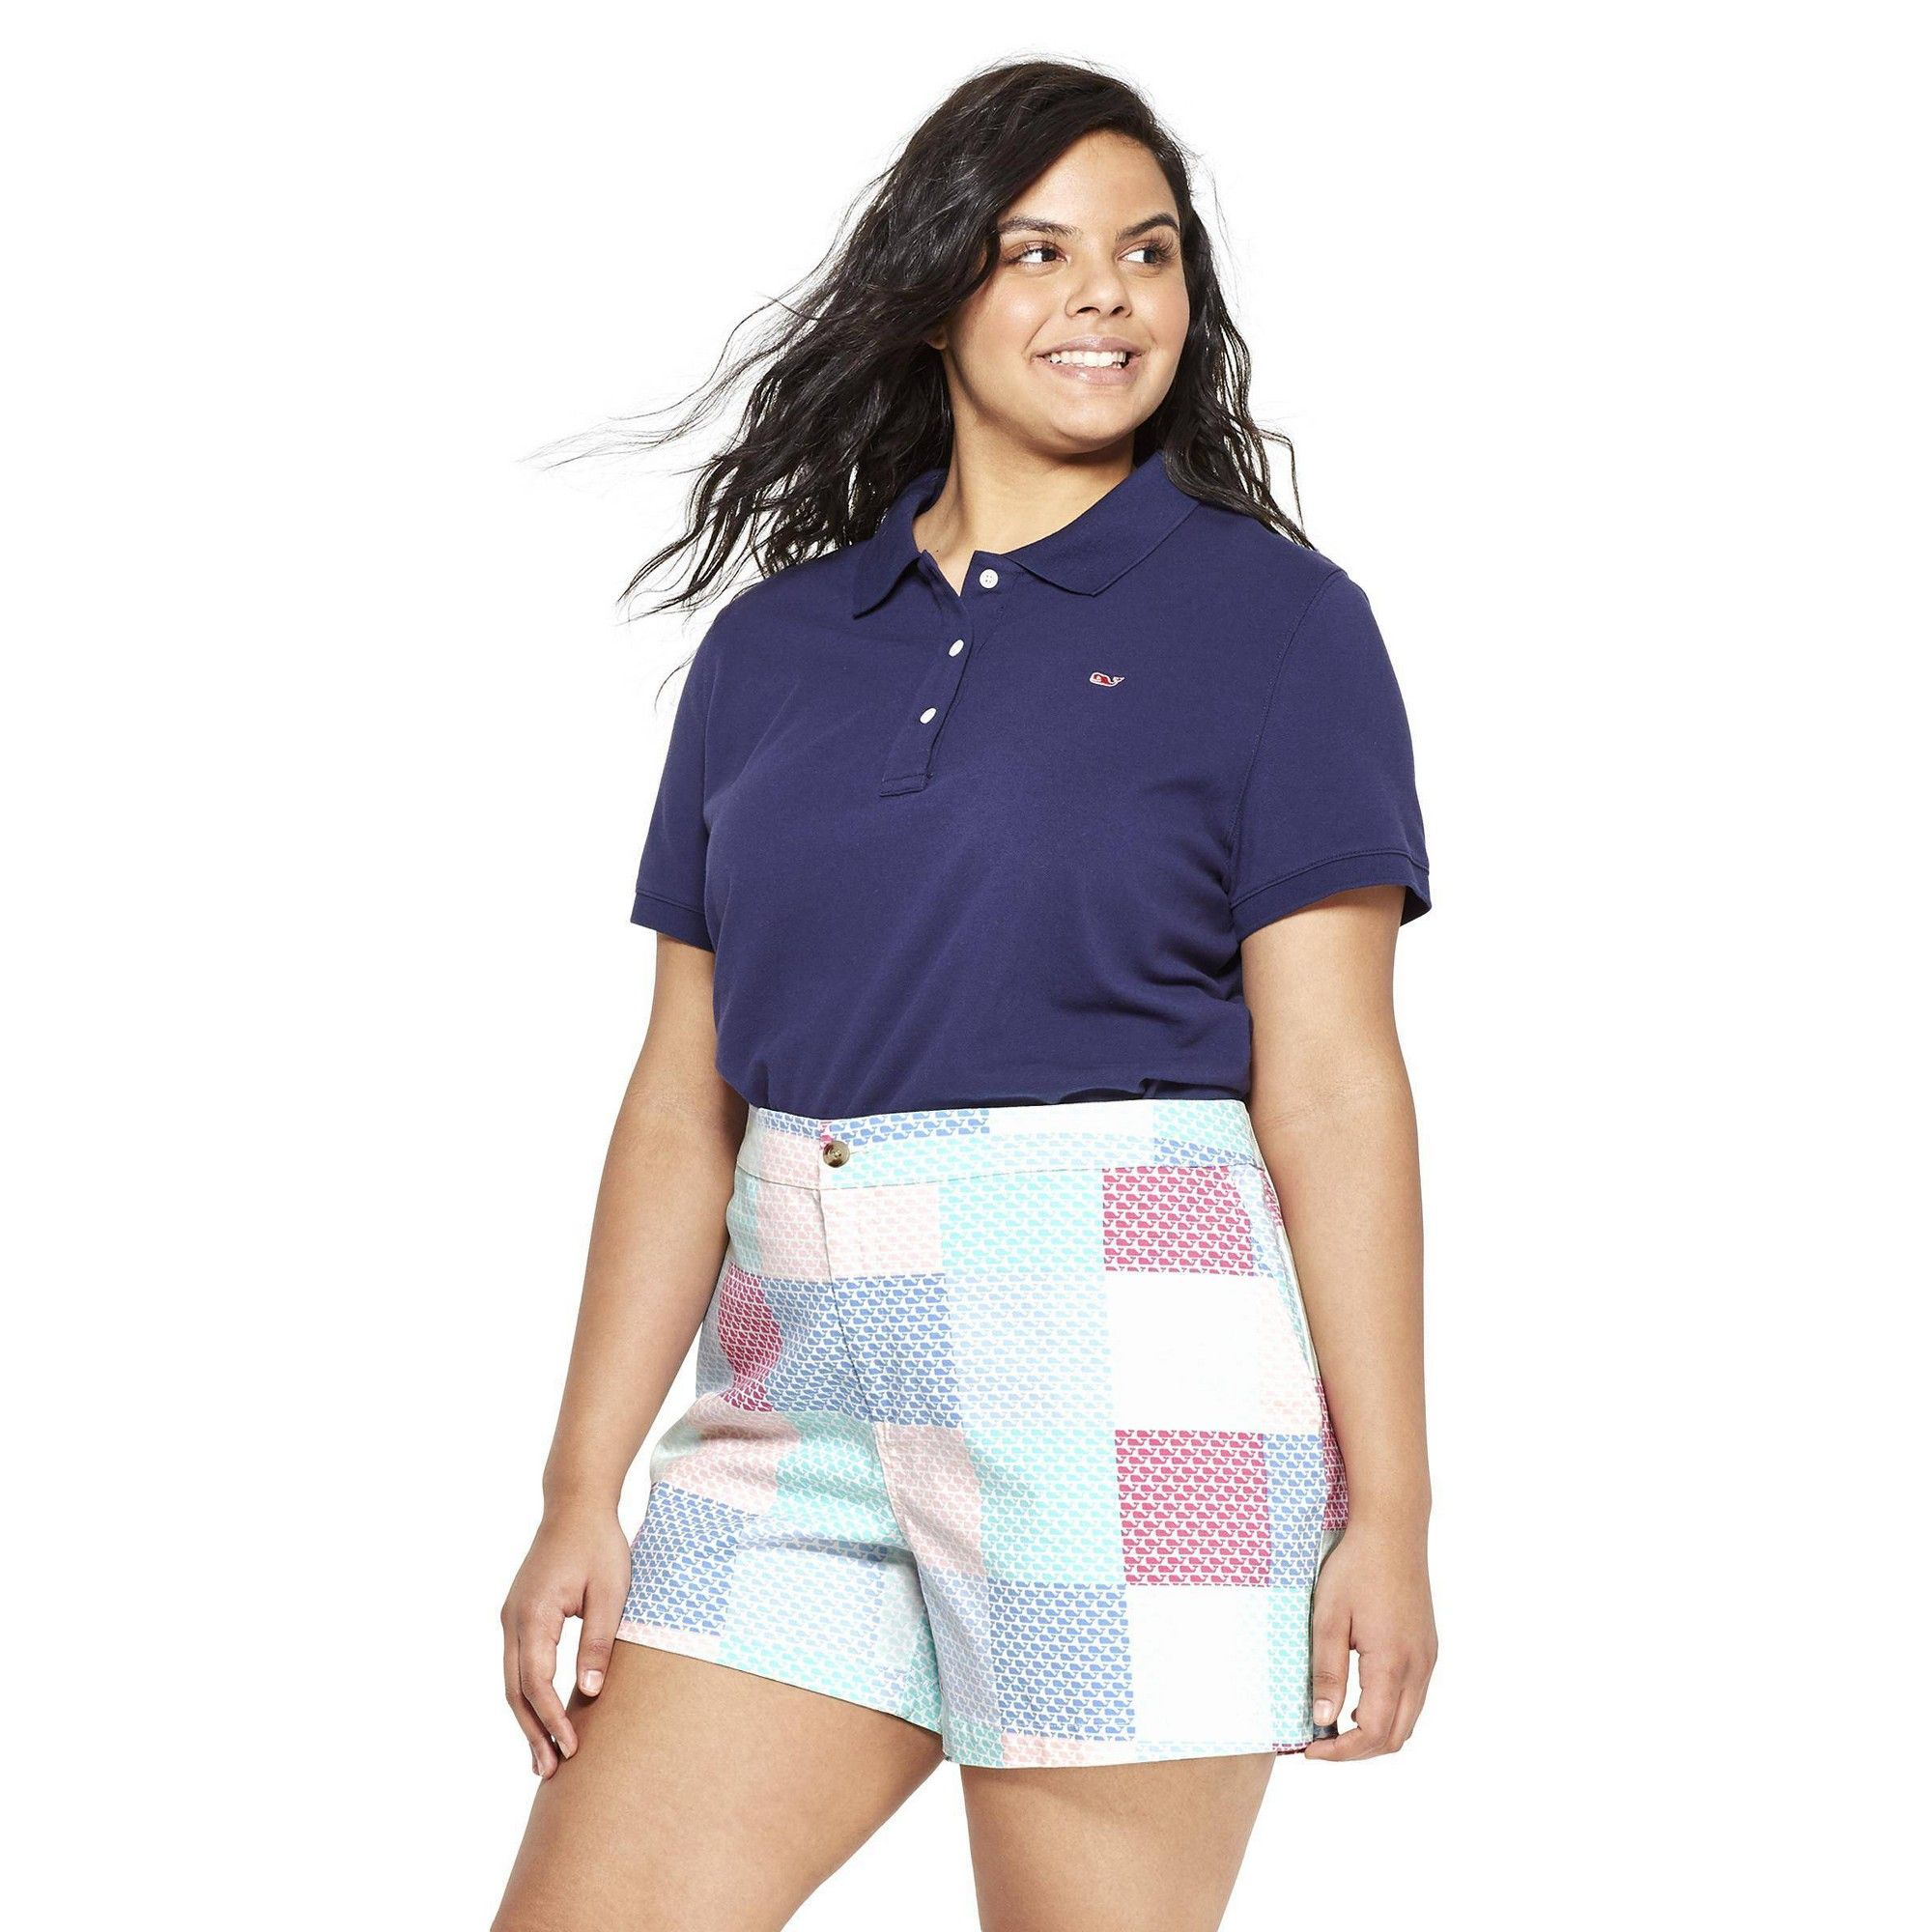 543c736a4 Women's Plus Size Short Sleeve Polo Shirt - Navy 1X - vineyard vines for  Target,